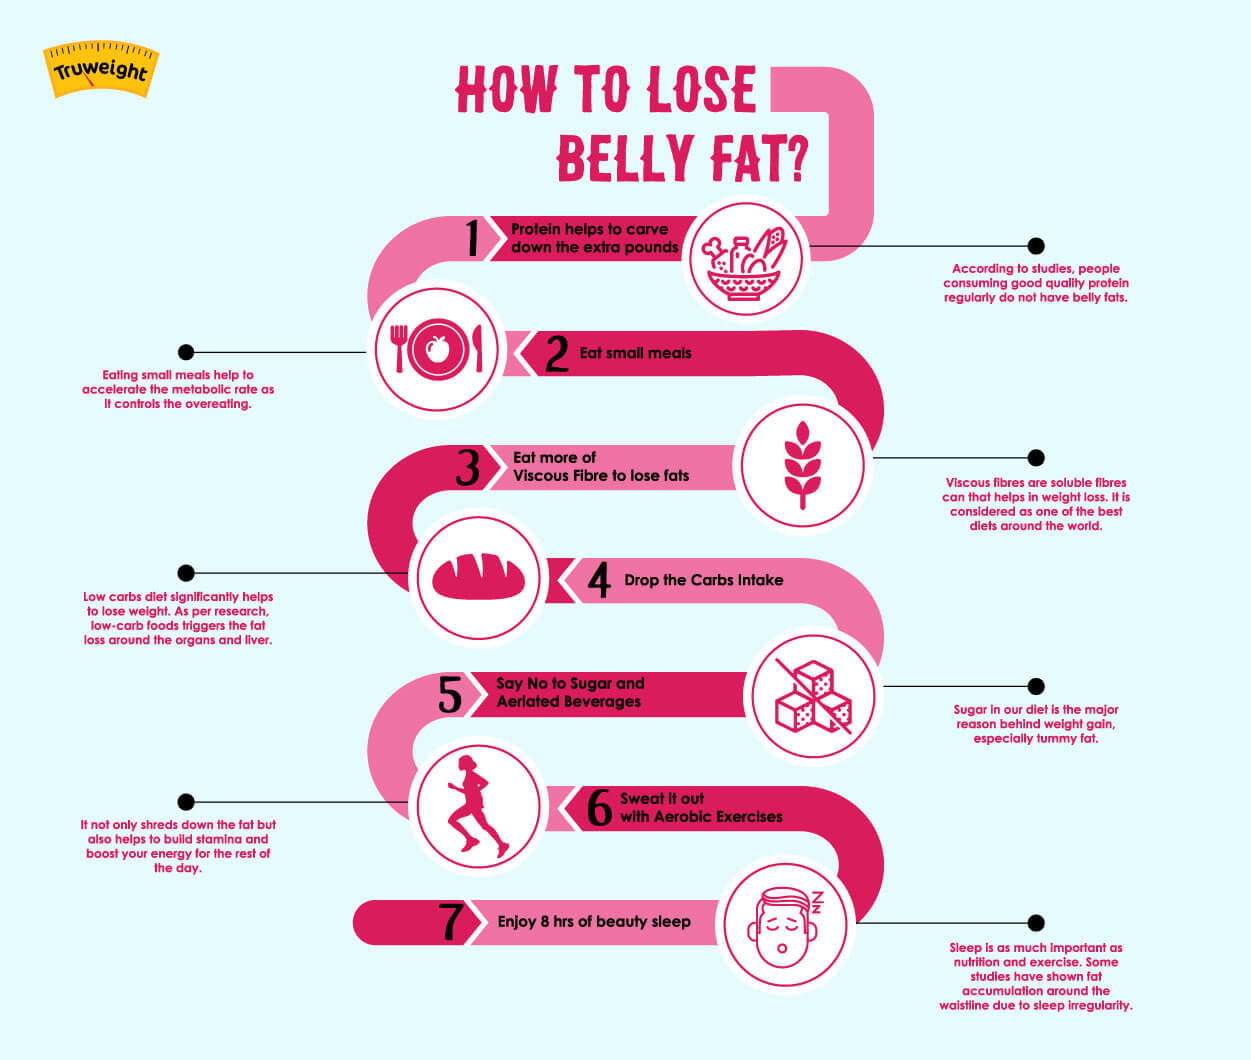 How To Lose Belly Fat For Men  Lose Belly Fat Simple Tricks & Tips Men Women